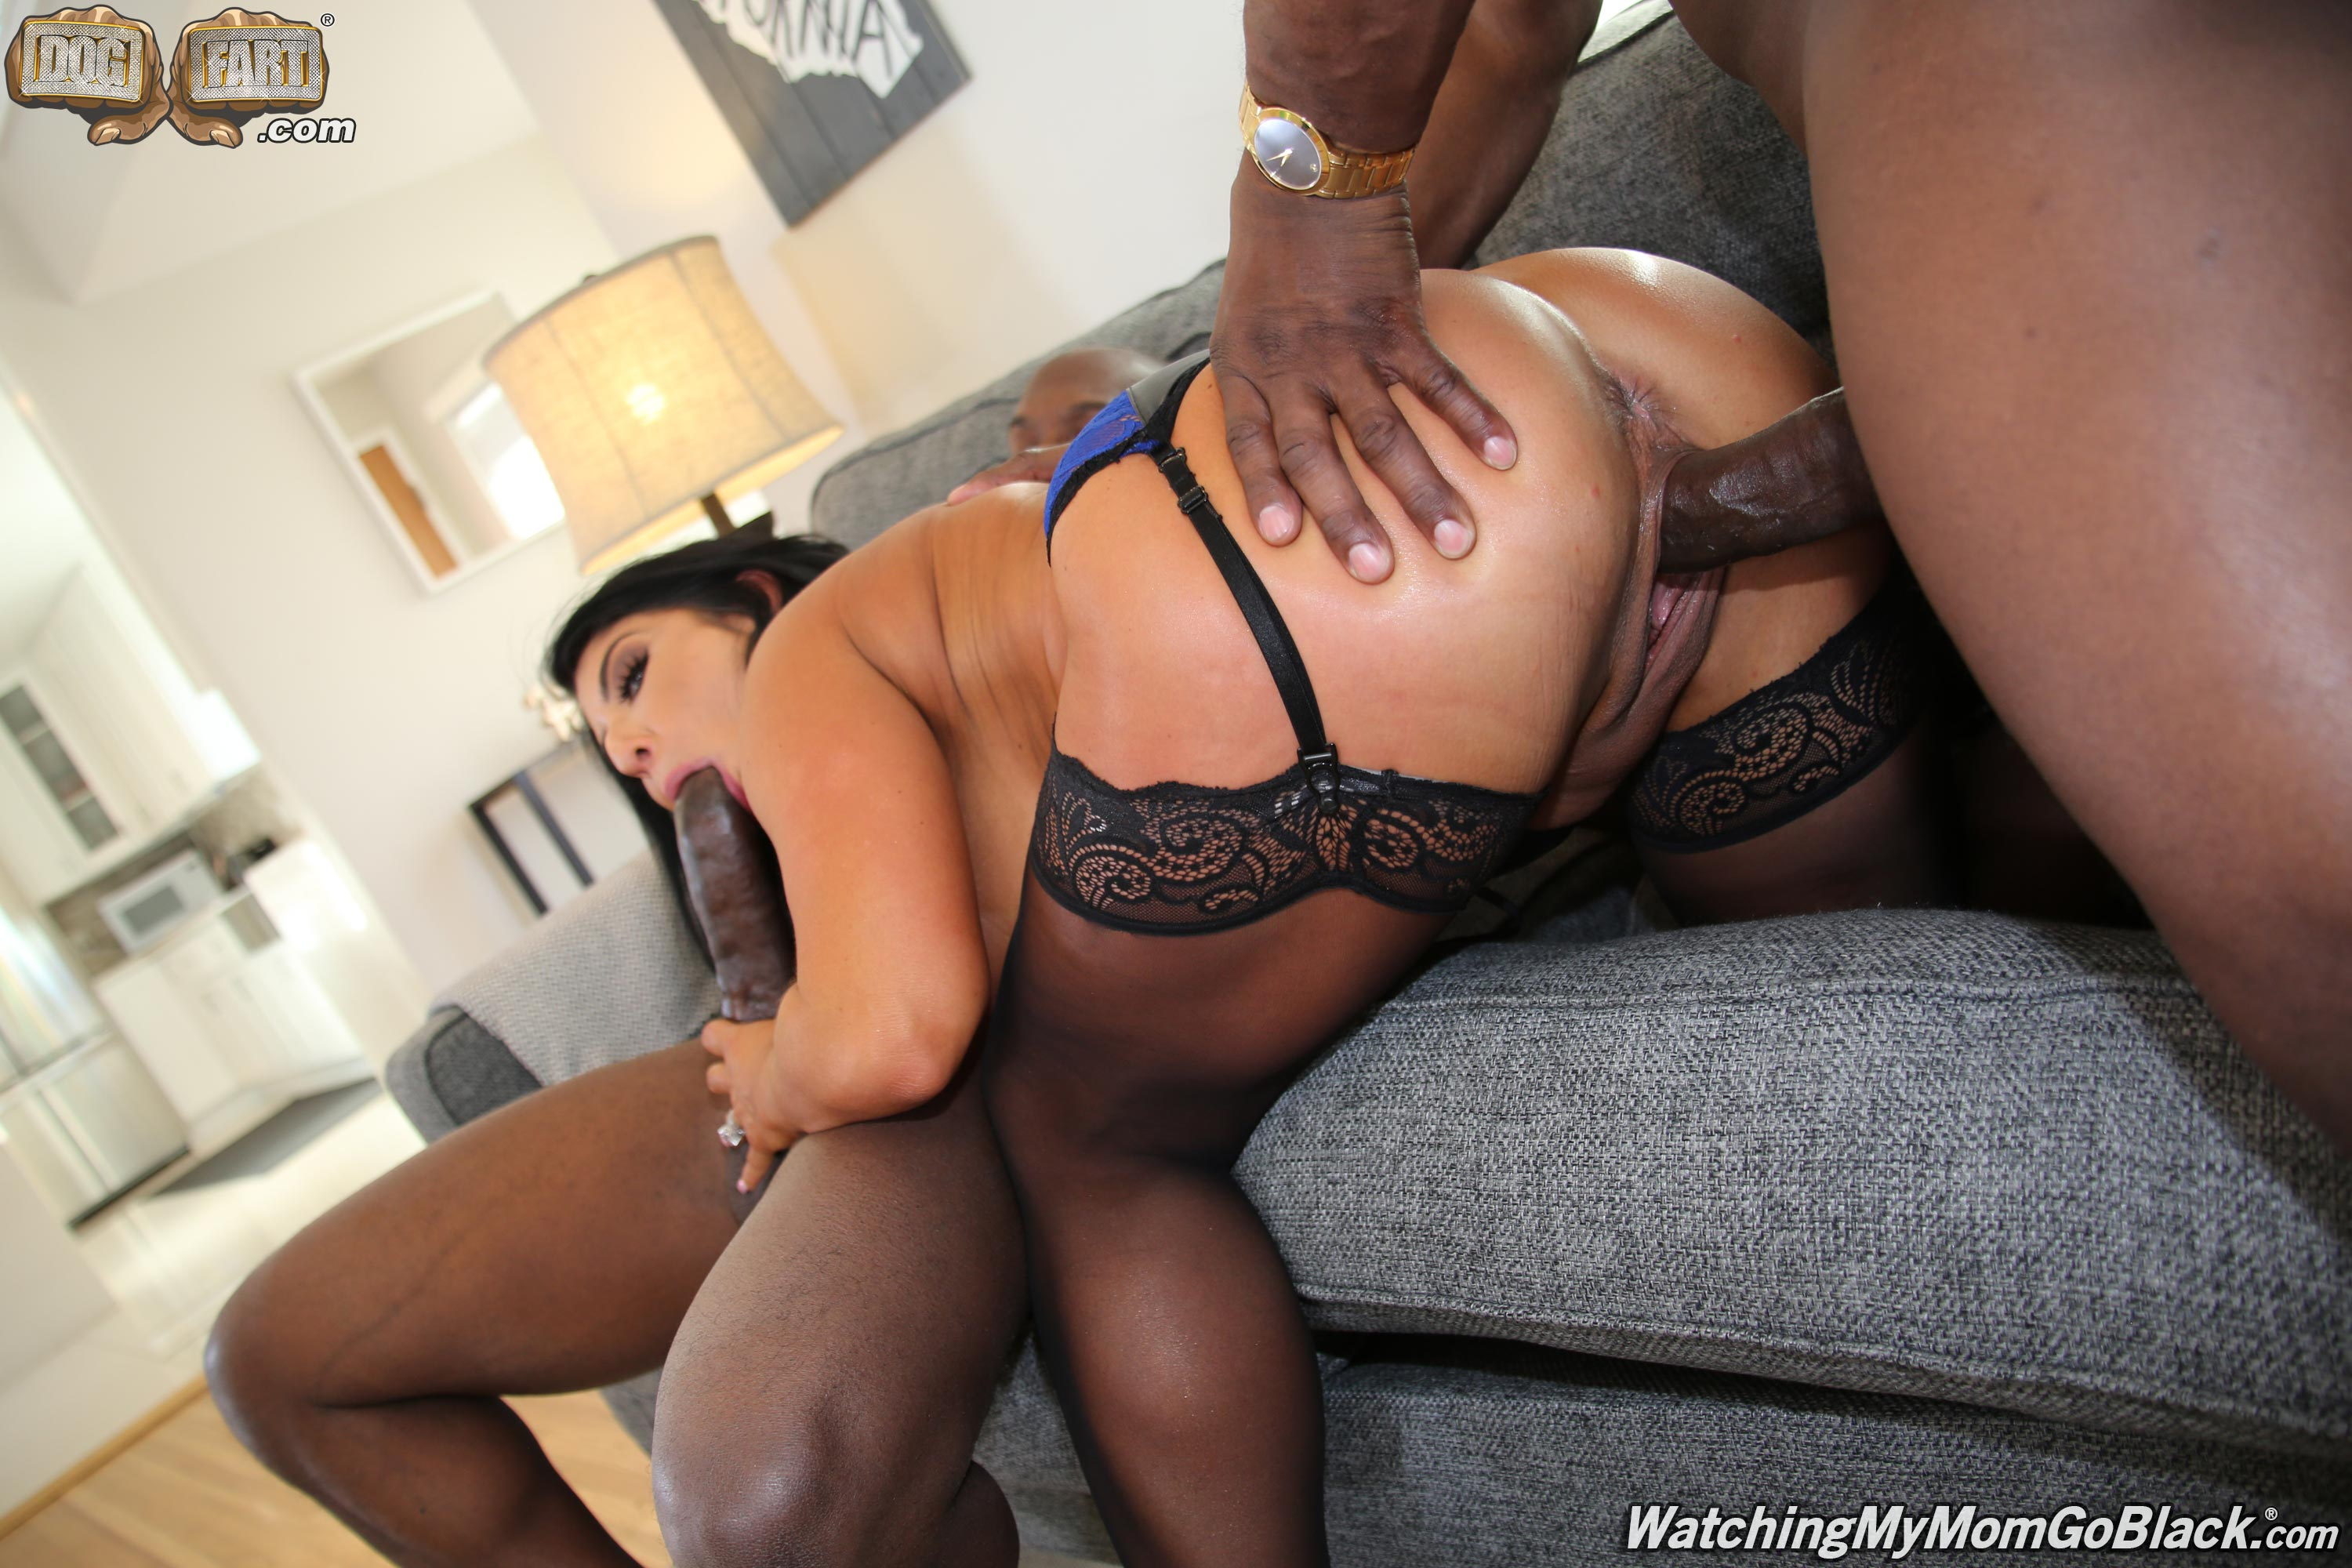 Riley raven and blacks mom picture — photo 6